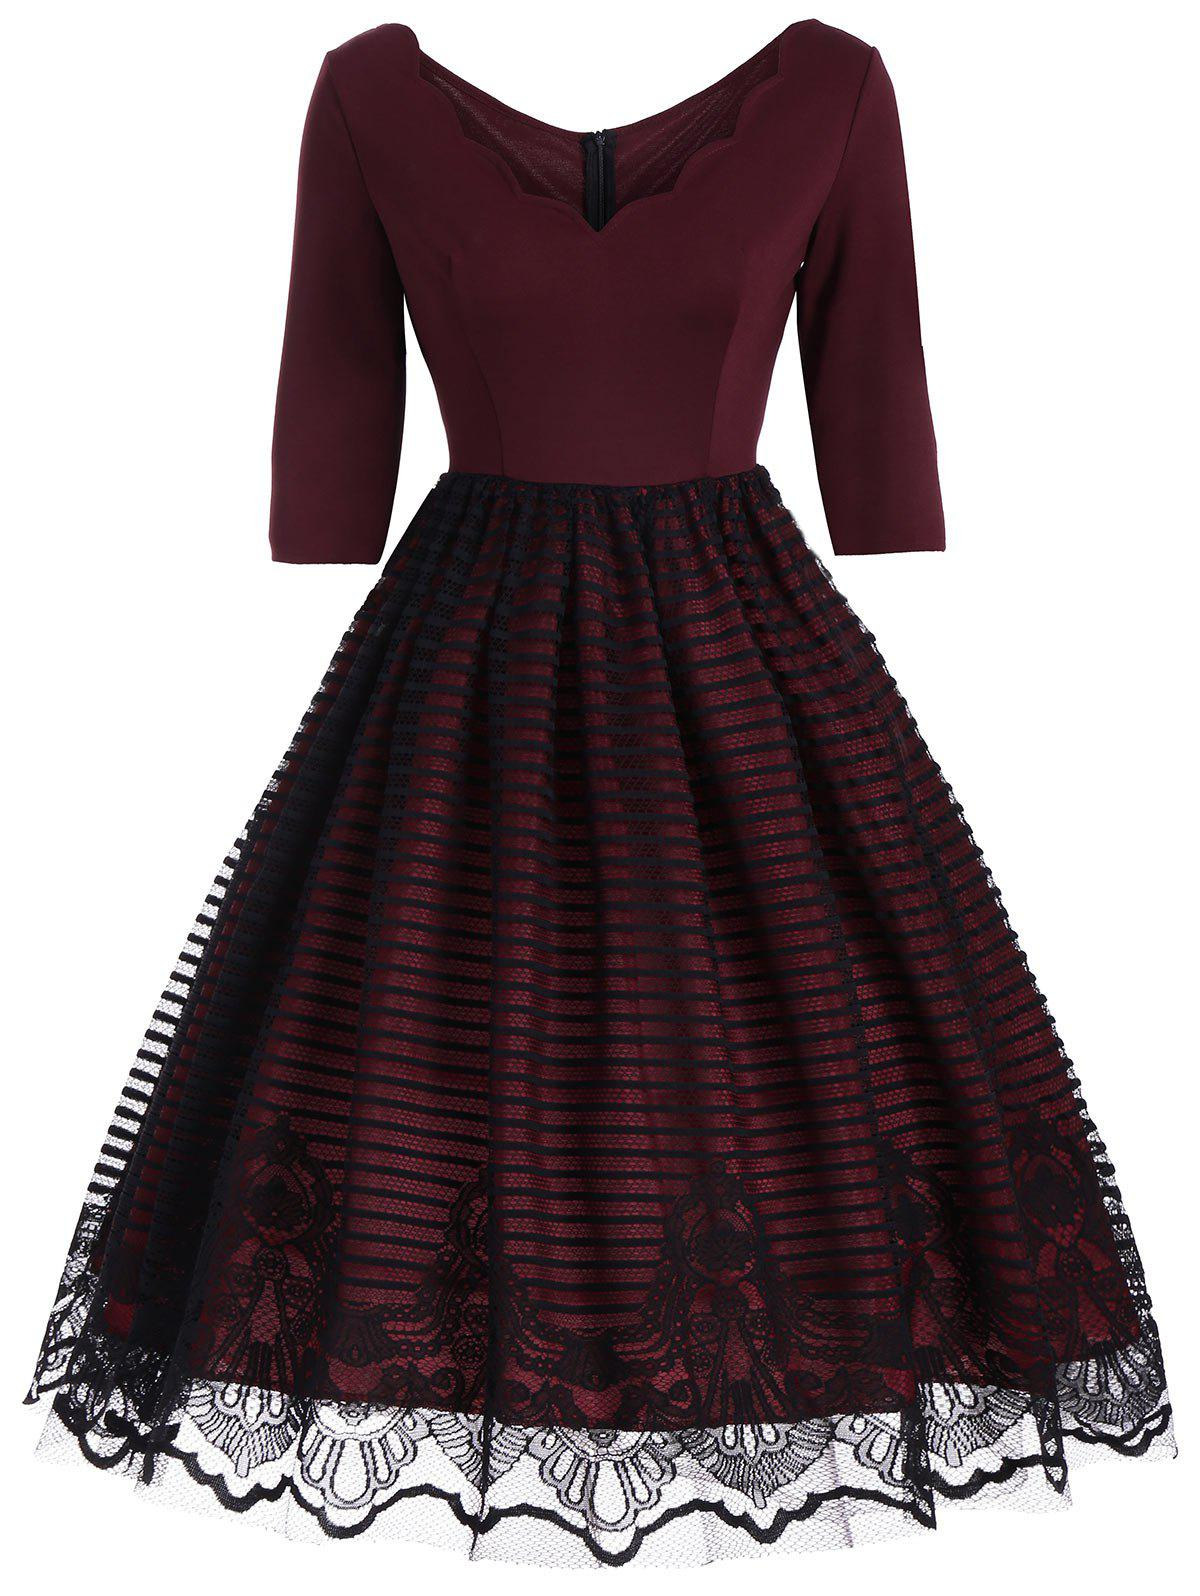 V Neck Lace Panel 1950 Prom DressWOMEN<br><br>Size: L; Color: WINE RED; Style: Vintage; Material: Cotton,Polyester; Silhouette: A-Line; Dresses Length: Knee-Length; Neckline: V-Neck; Sleeve Length: 3/4 Length Sleeves; Embellishment: Lace; Pattern Type: Solid; With Belt: No; Season: Fall; Weight: 0.3800kg; Package Contents: 1 x Dress;